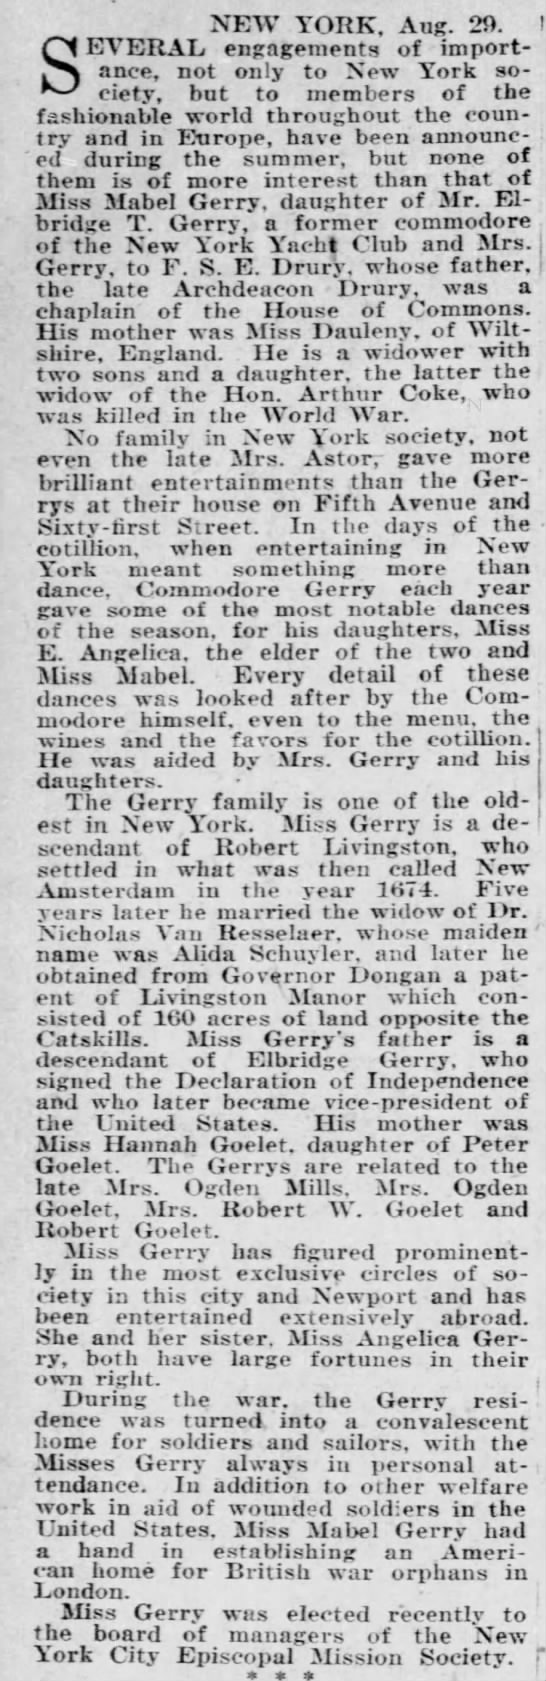 Gerry family history, Aug 30, 1925 -